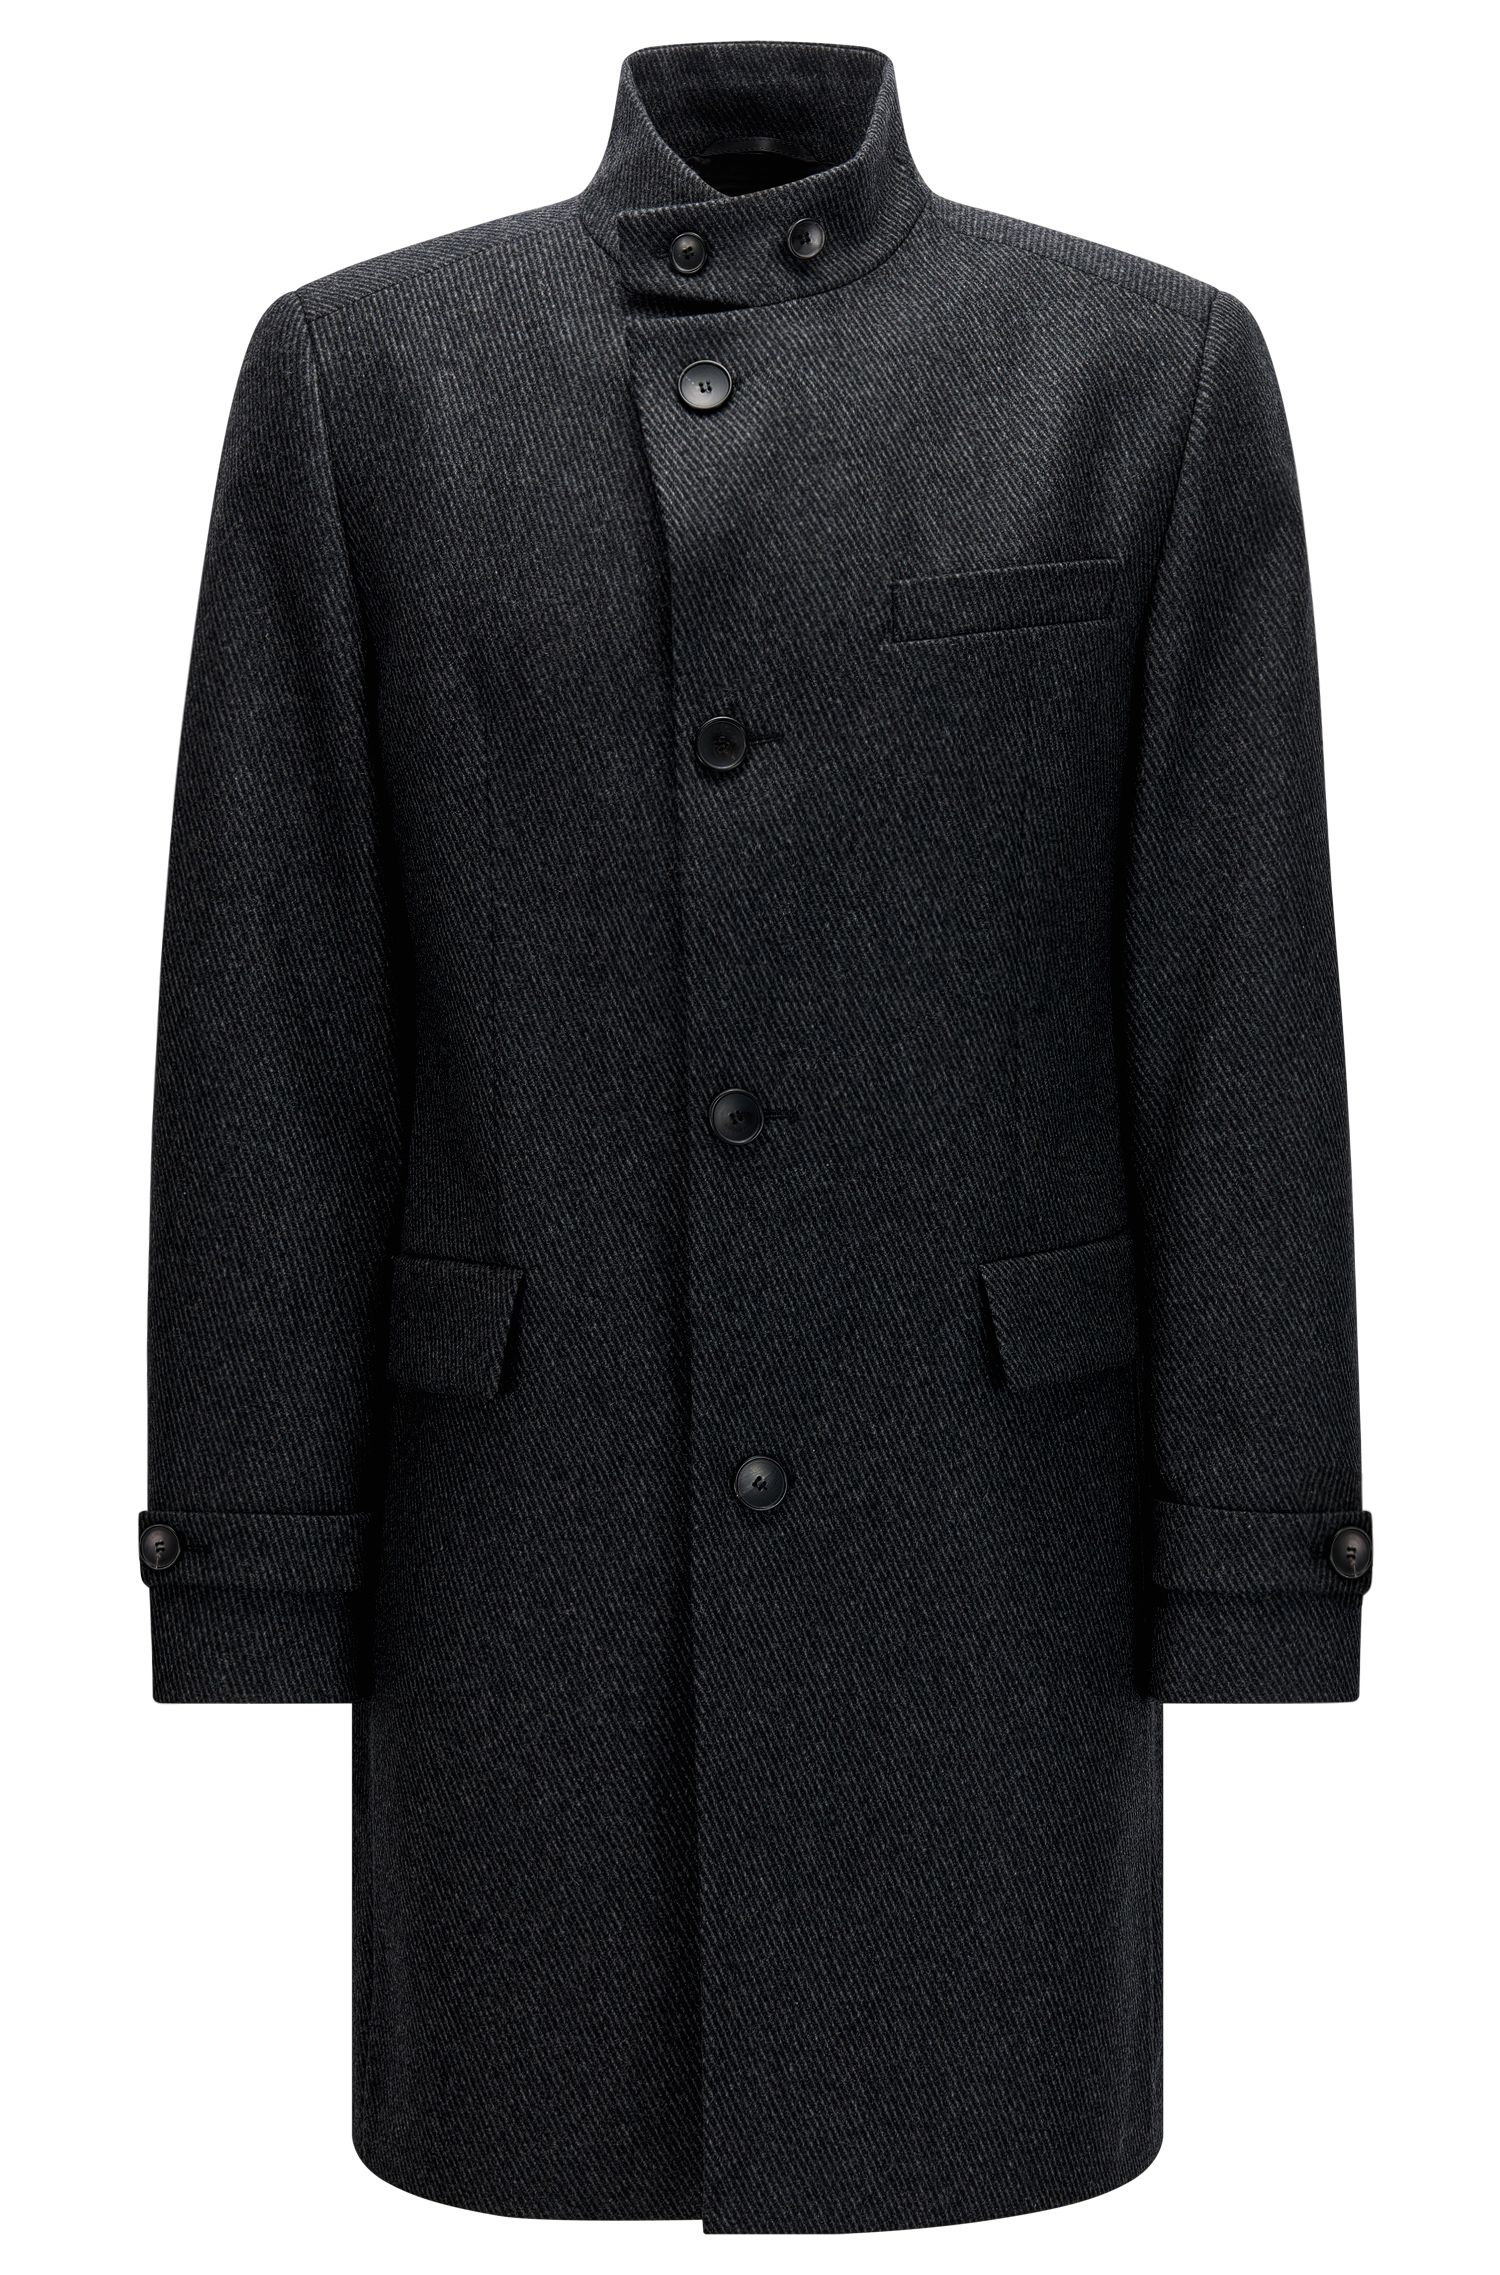 Regular-fit coat in a structured wool blend